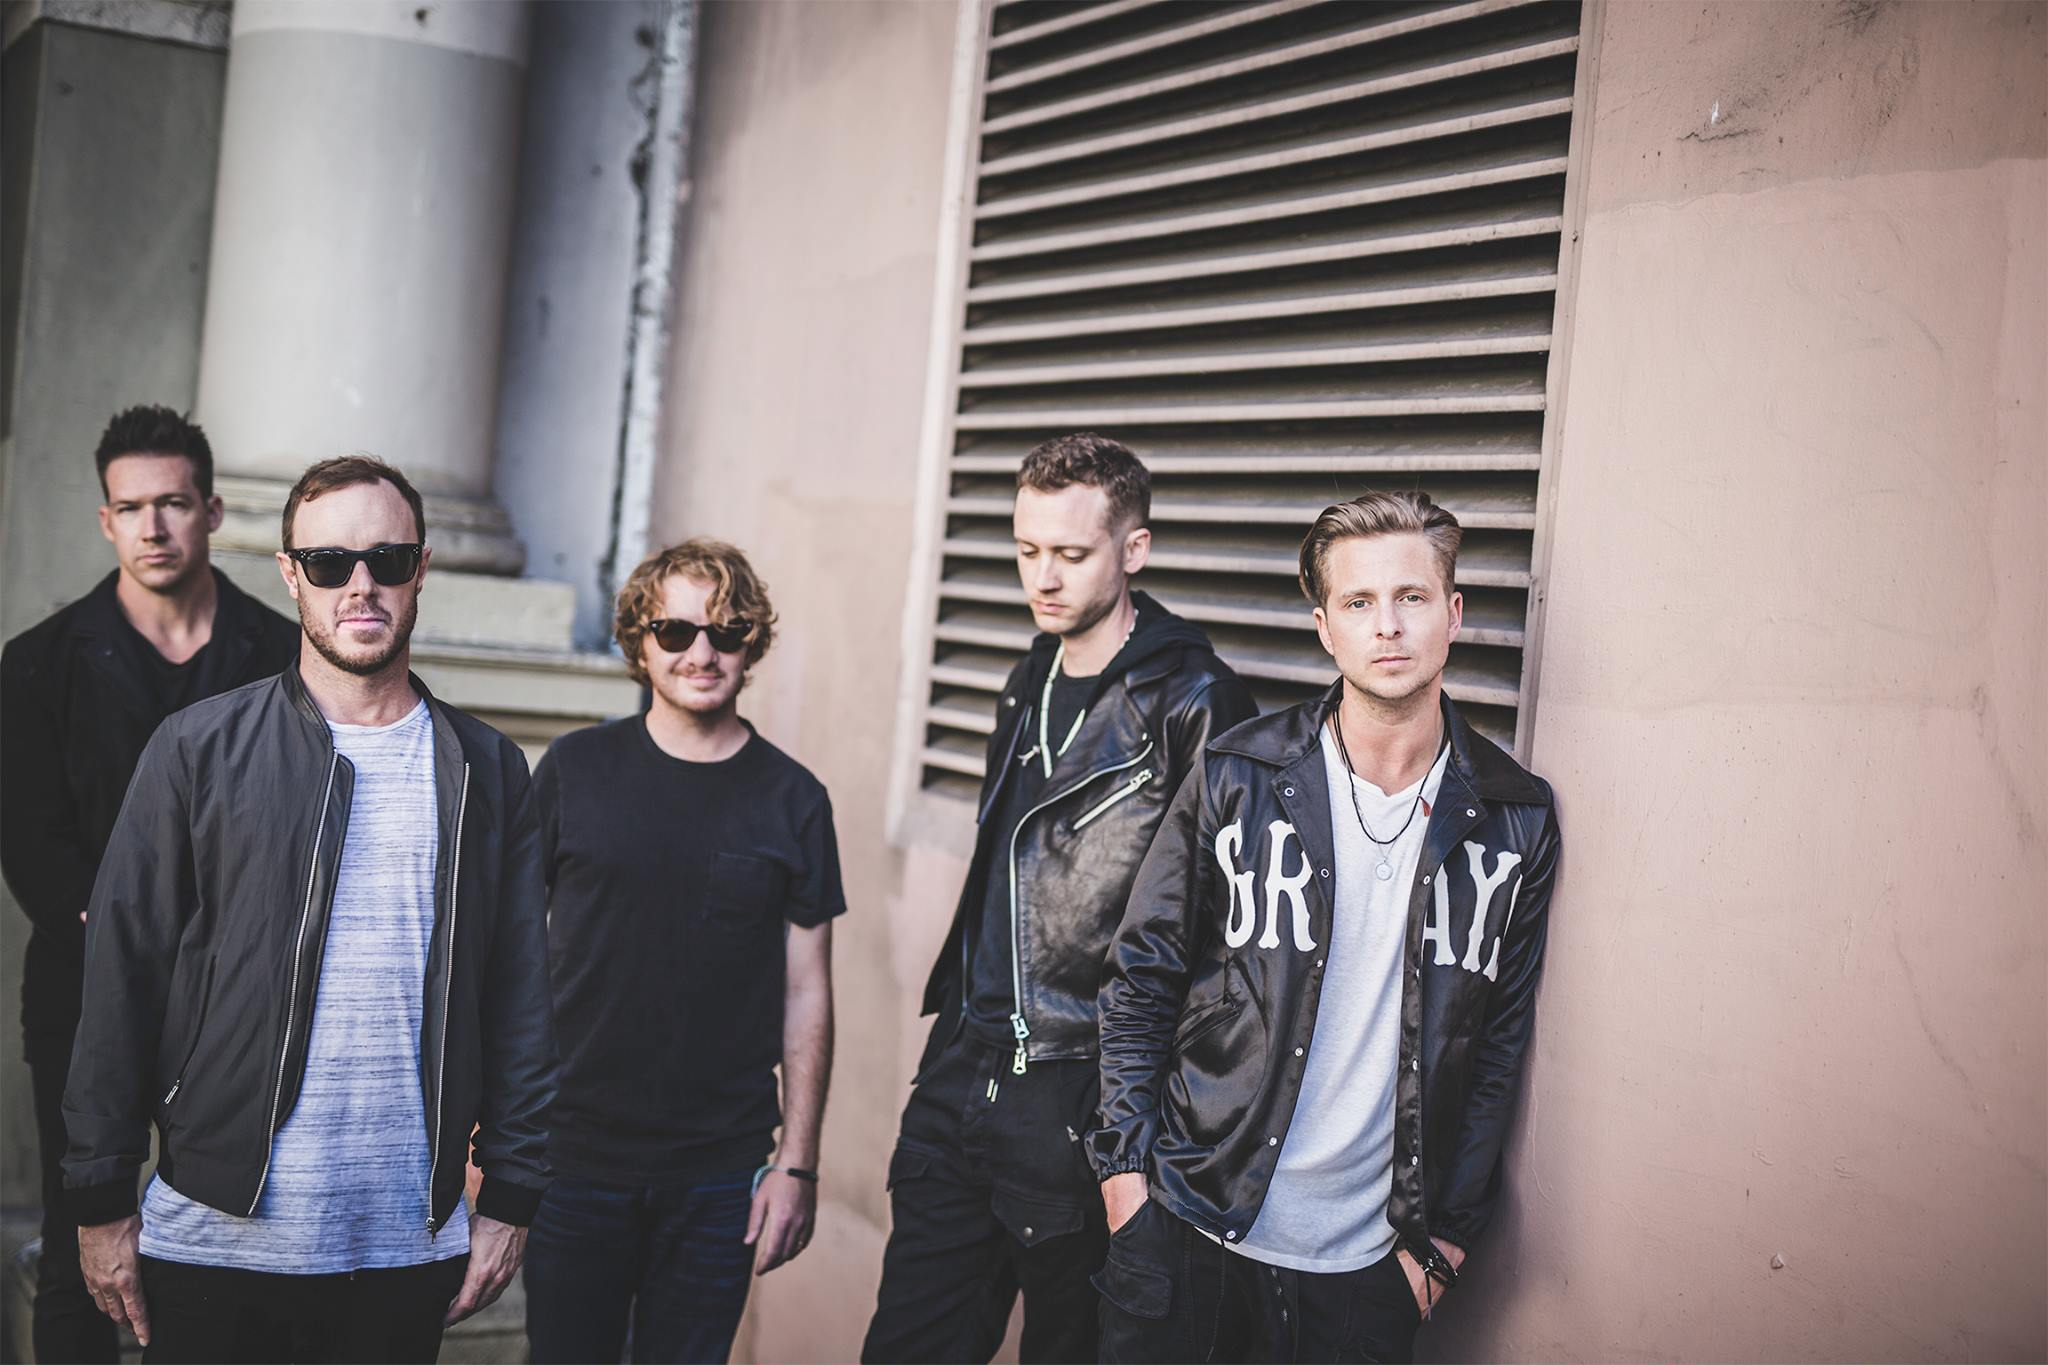 (Photo: OneRepublic's official Facebook page)